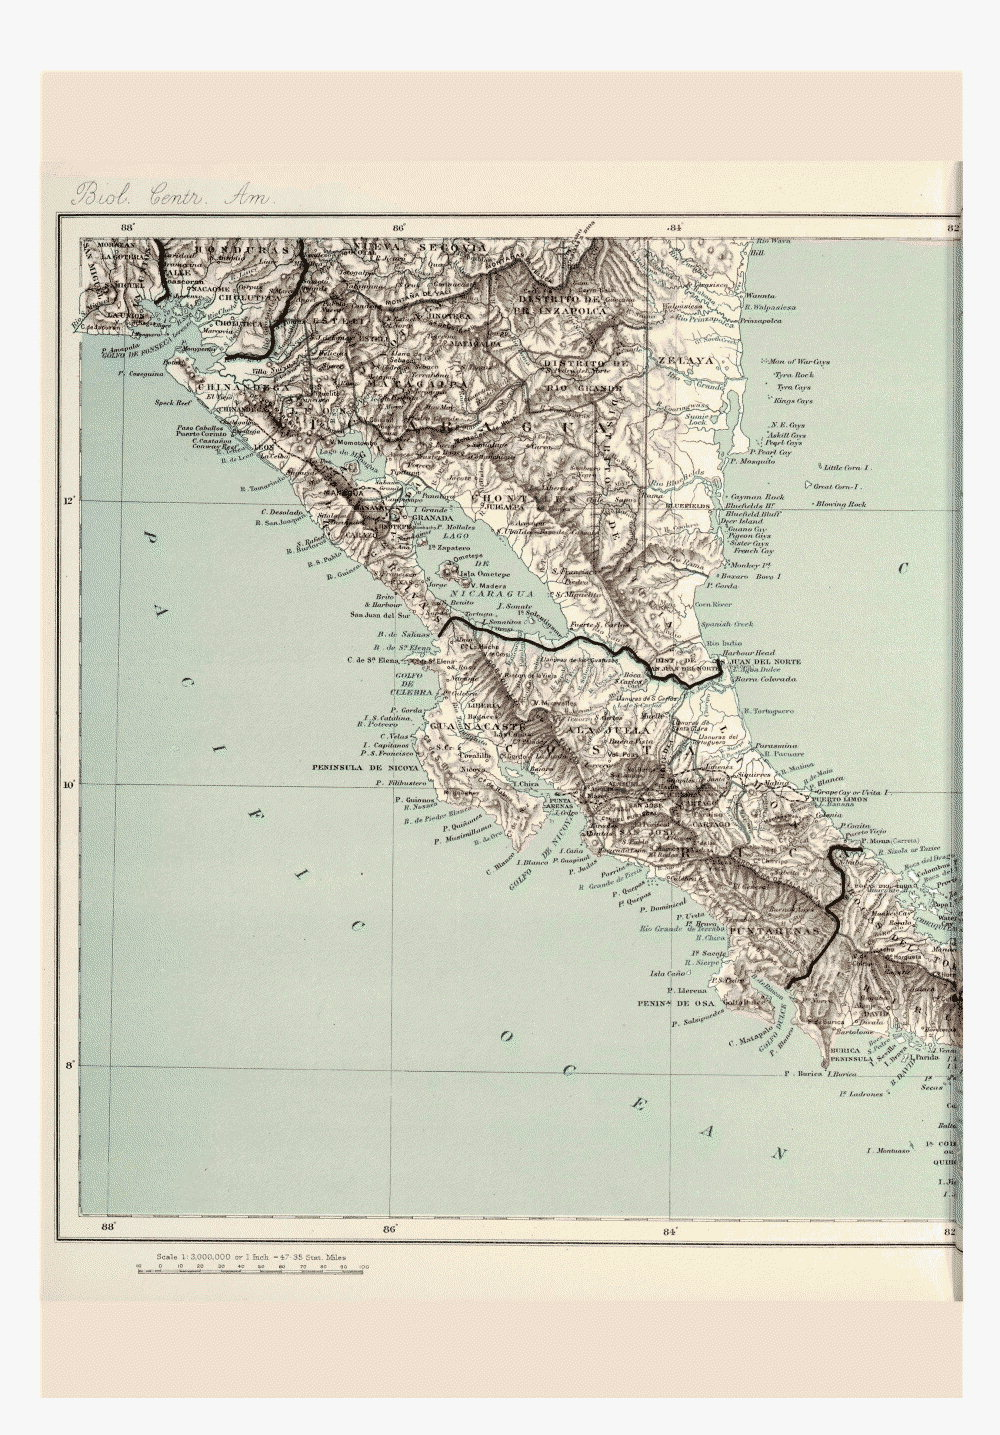 Maps of Central America,  Image number:bca_01_00_00_198